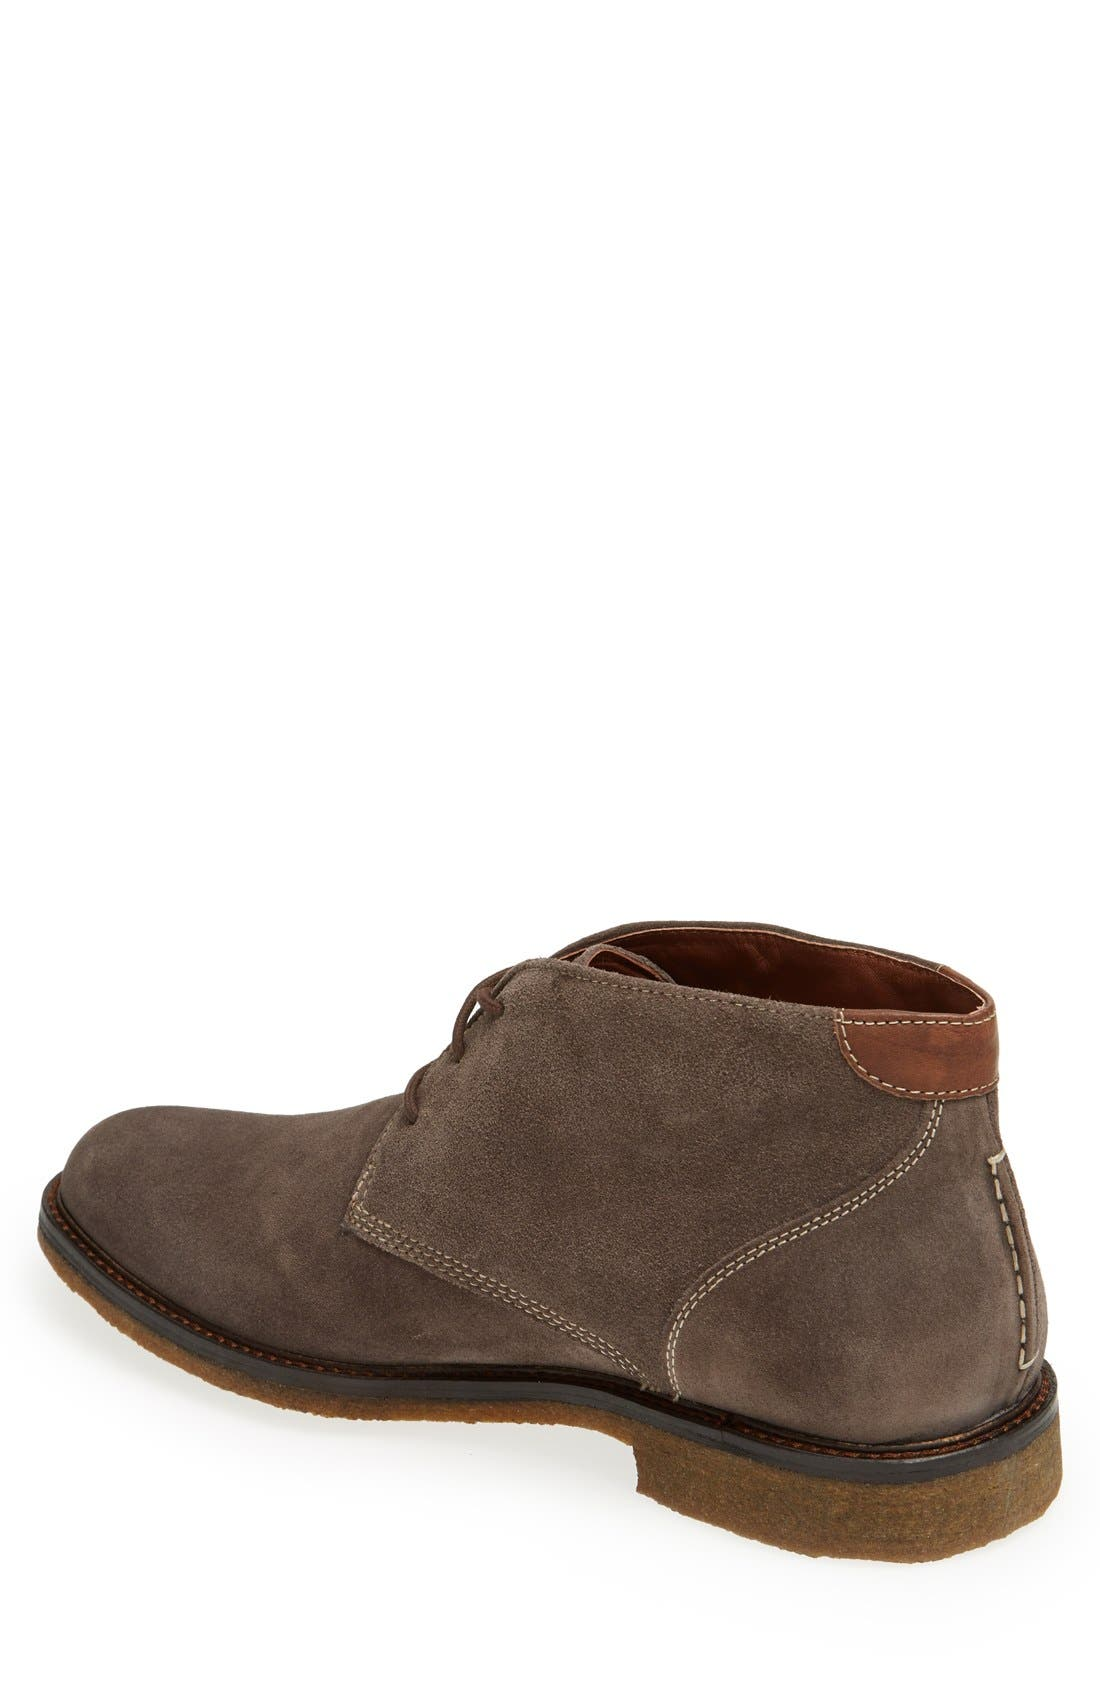 'Copeland' Suede Chukka Boot,                             Alternate thumbnail 20, color,